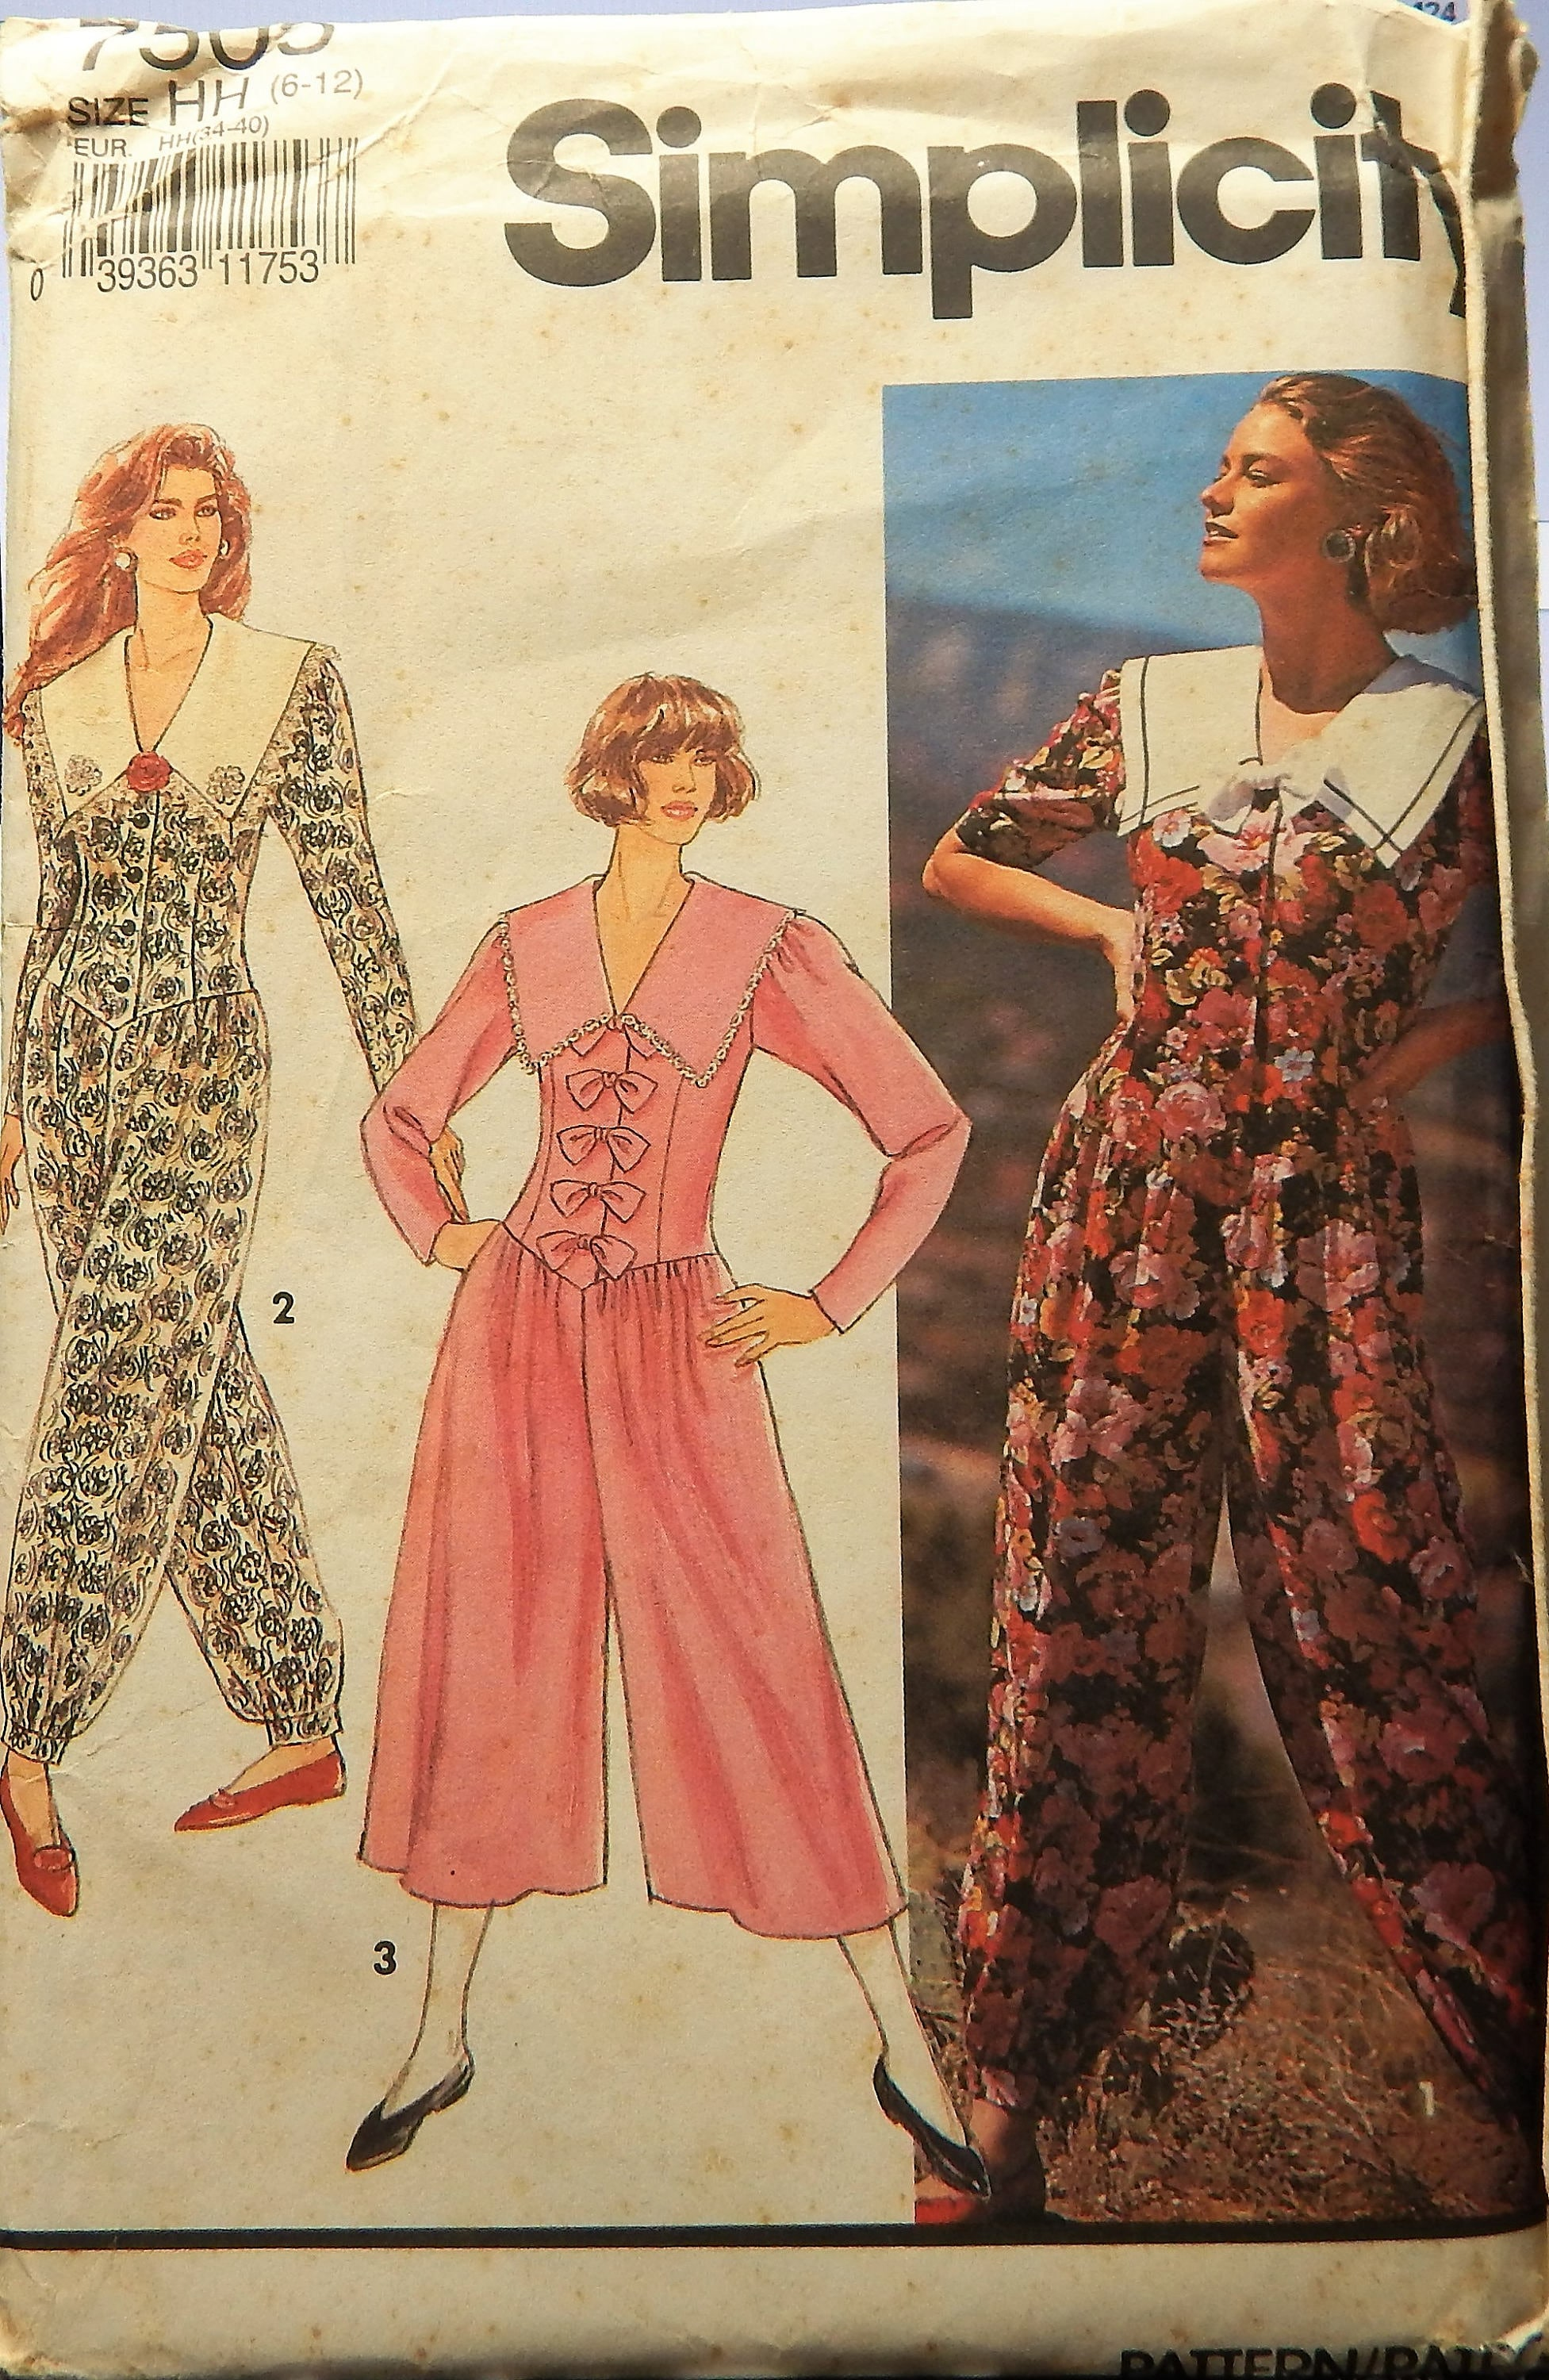 1991 Simplicity Pattern 7505 UNCUT Size Misses 6 8 10 12 Romper Dress in  two lengths...factory folded from HelensFavorites on Etsy Studio f33af986a